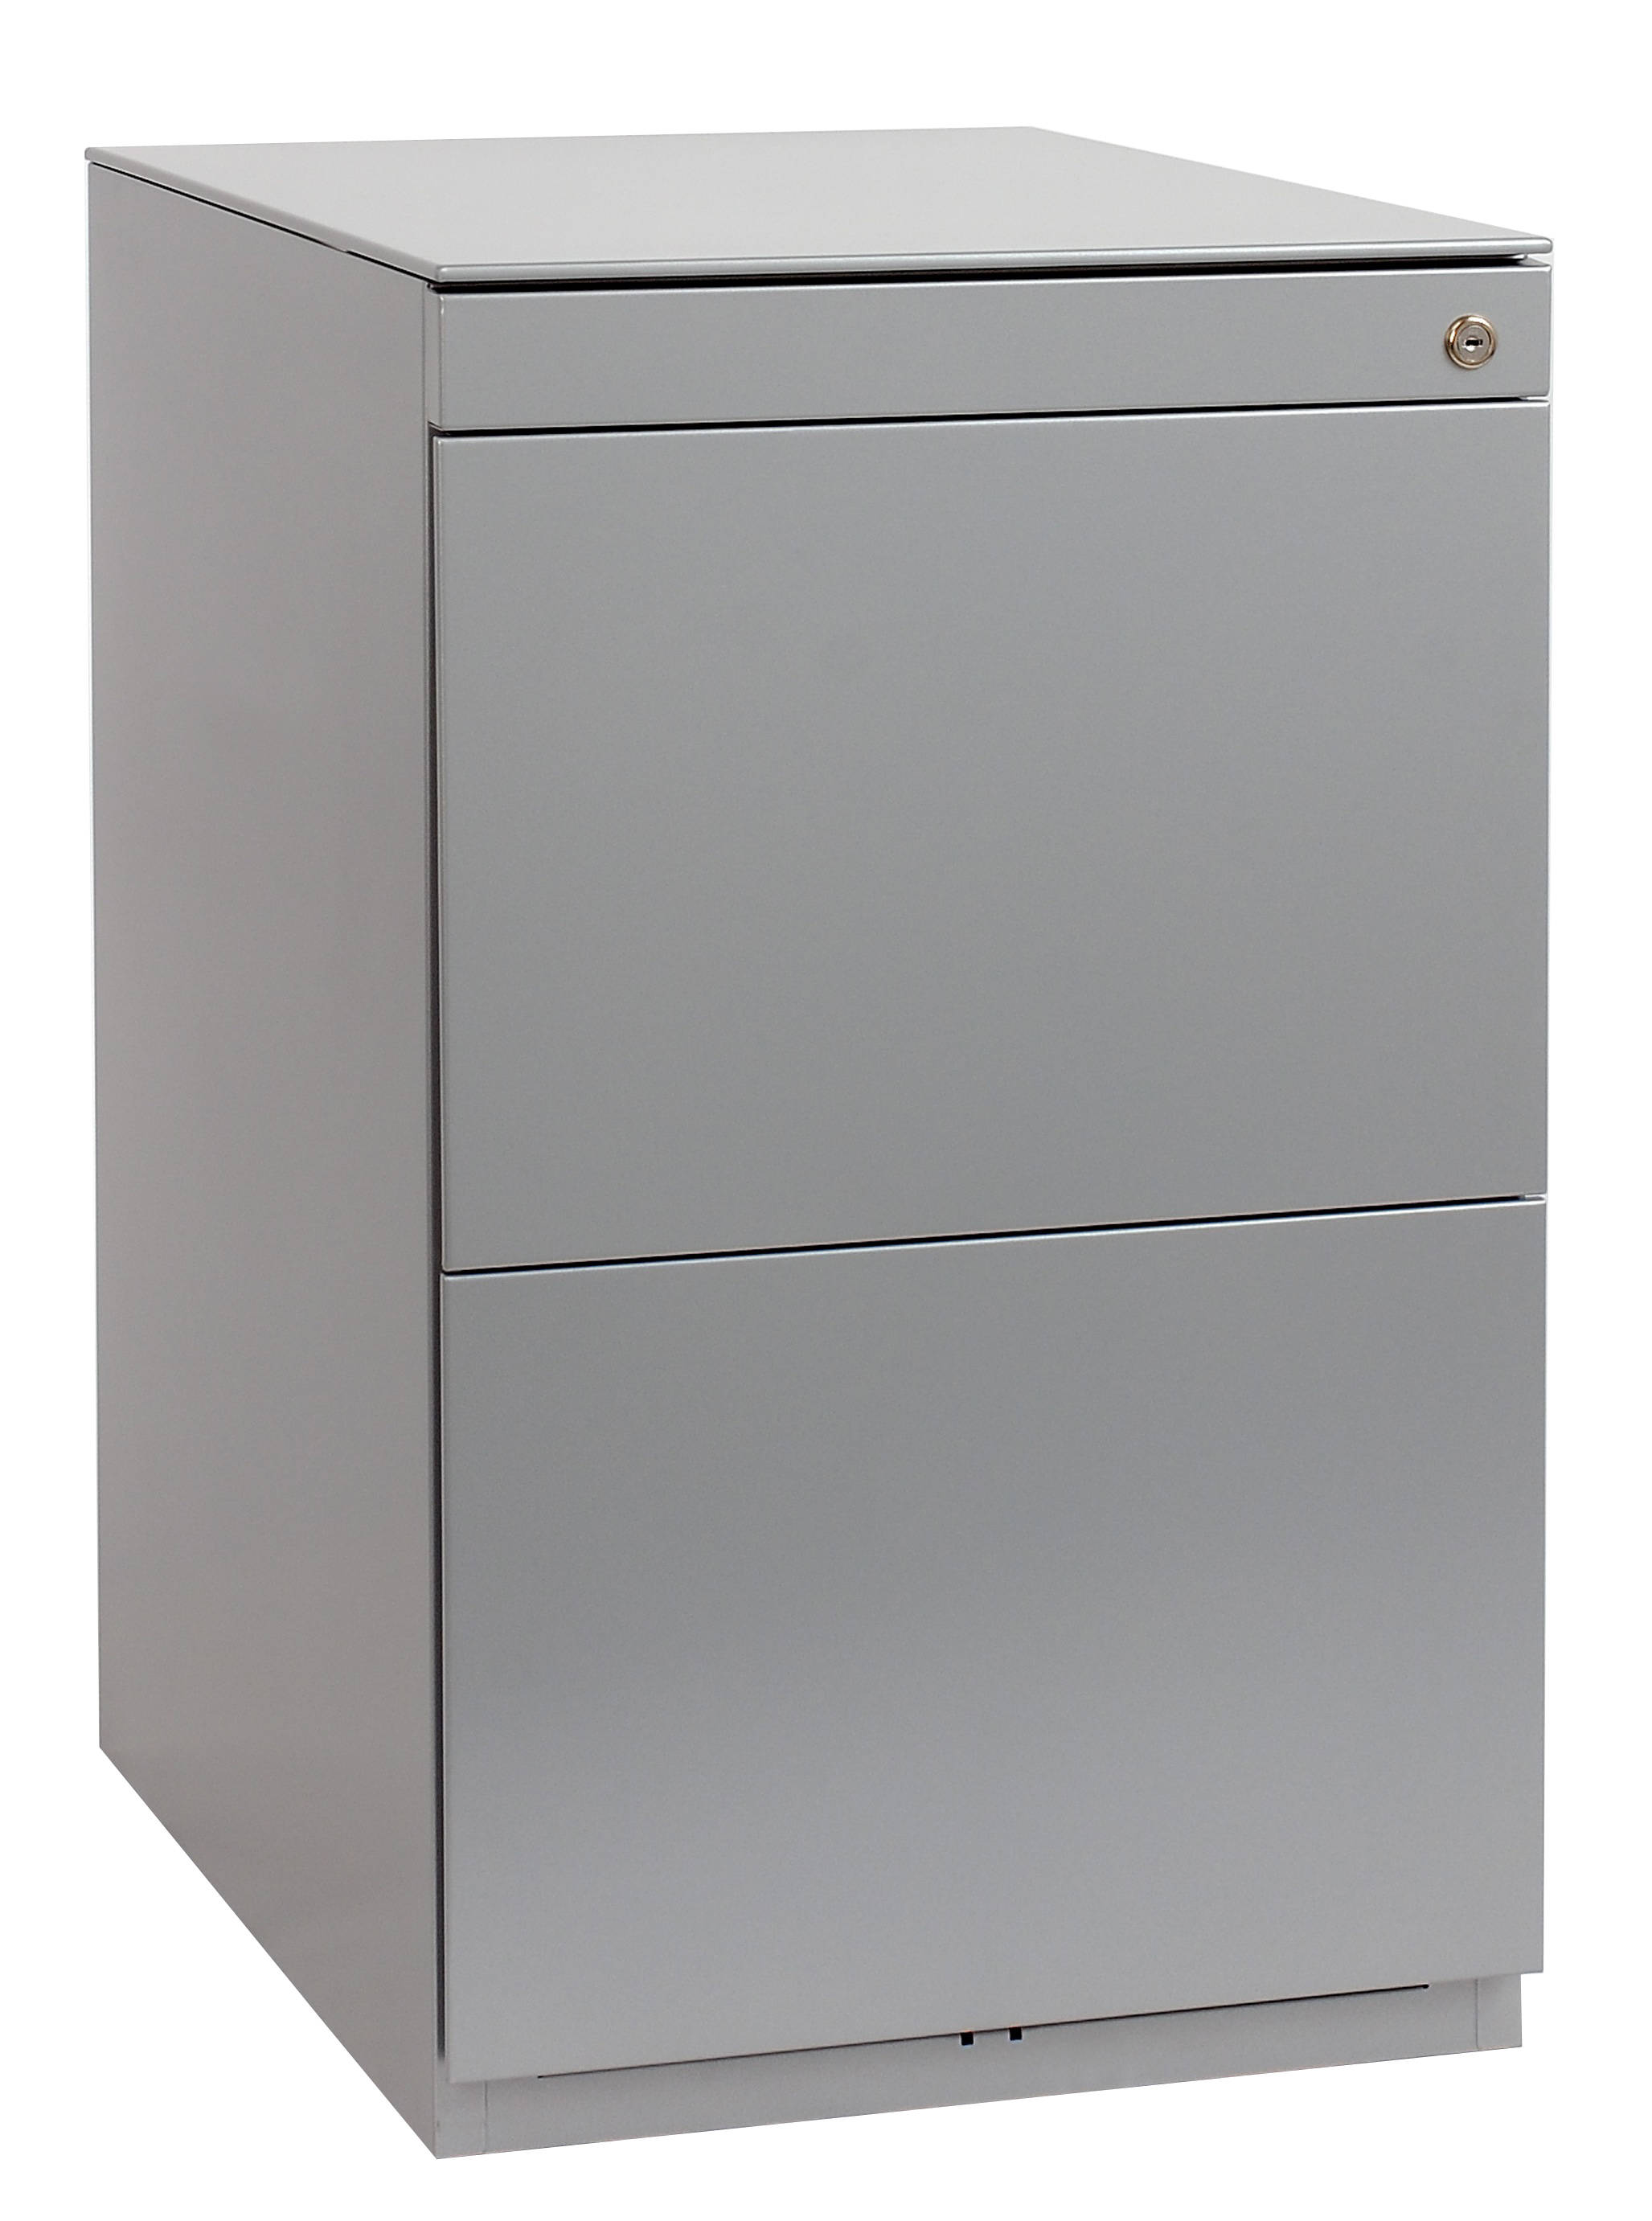 NWA53G7FF -  Bisley Standcontainer Note